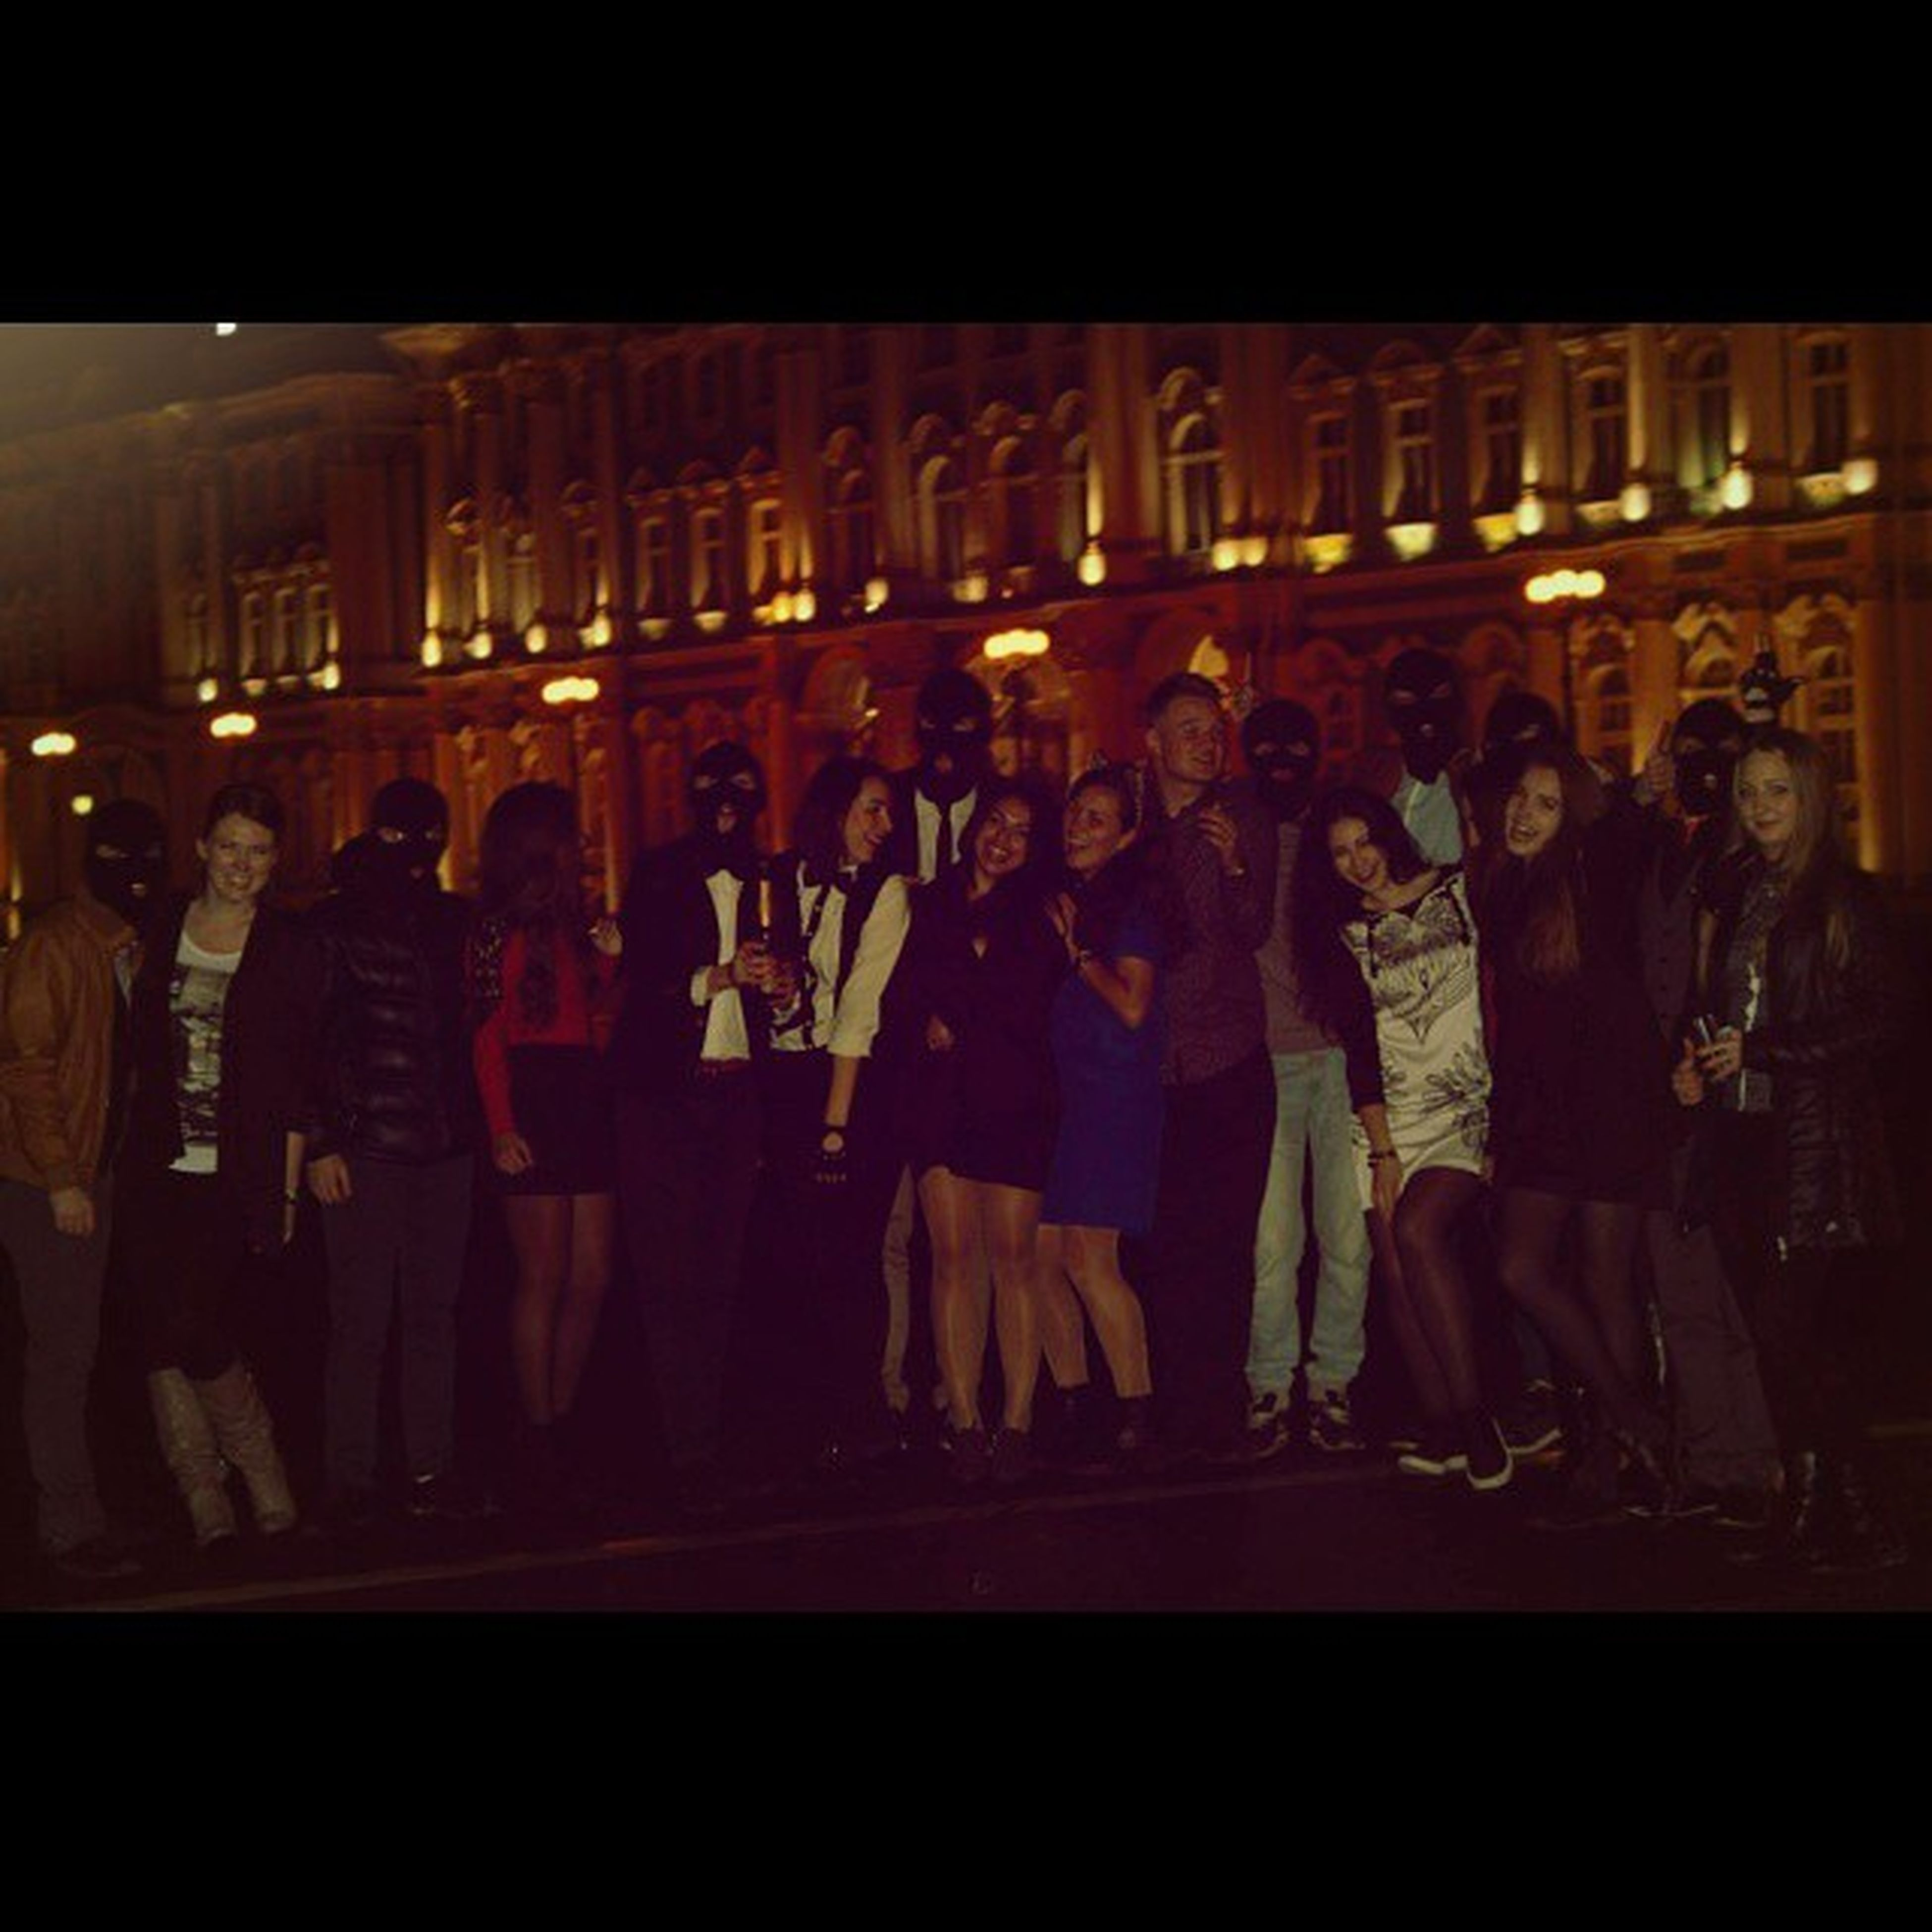 indoors, men, person, lifestyles, standing, night, illuminated, in a row, large group of people, side by side, walking, leisure activity, rear view, group of people, medium group of people, built structure, architecture, dark, full length